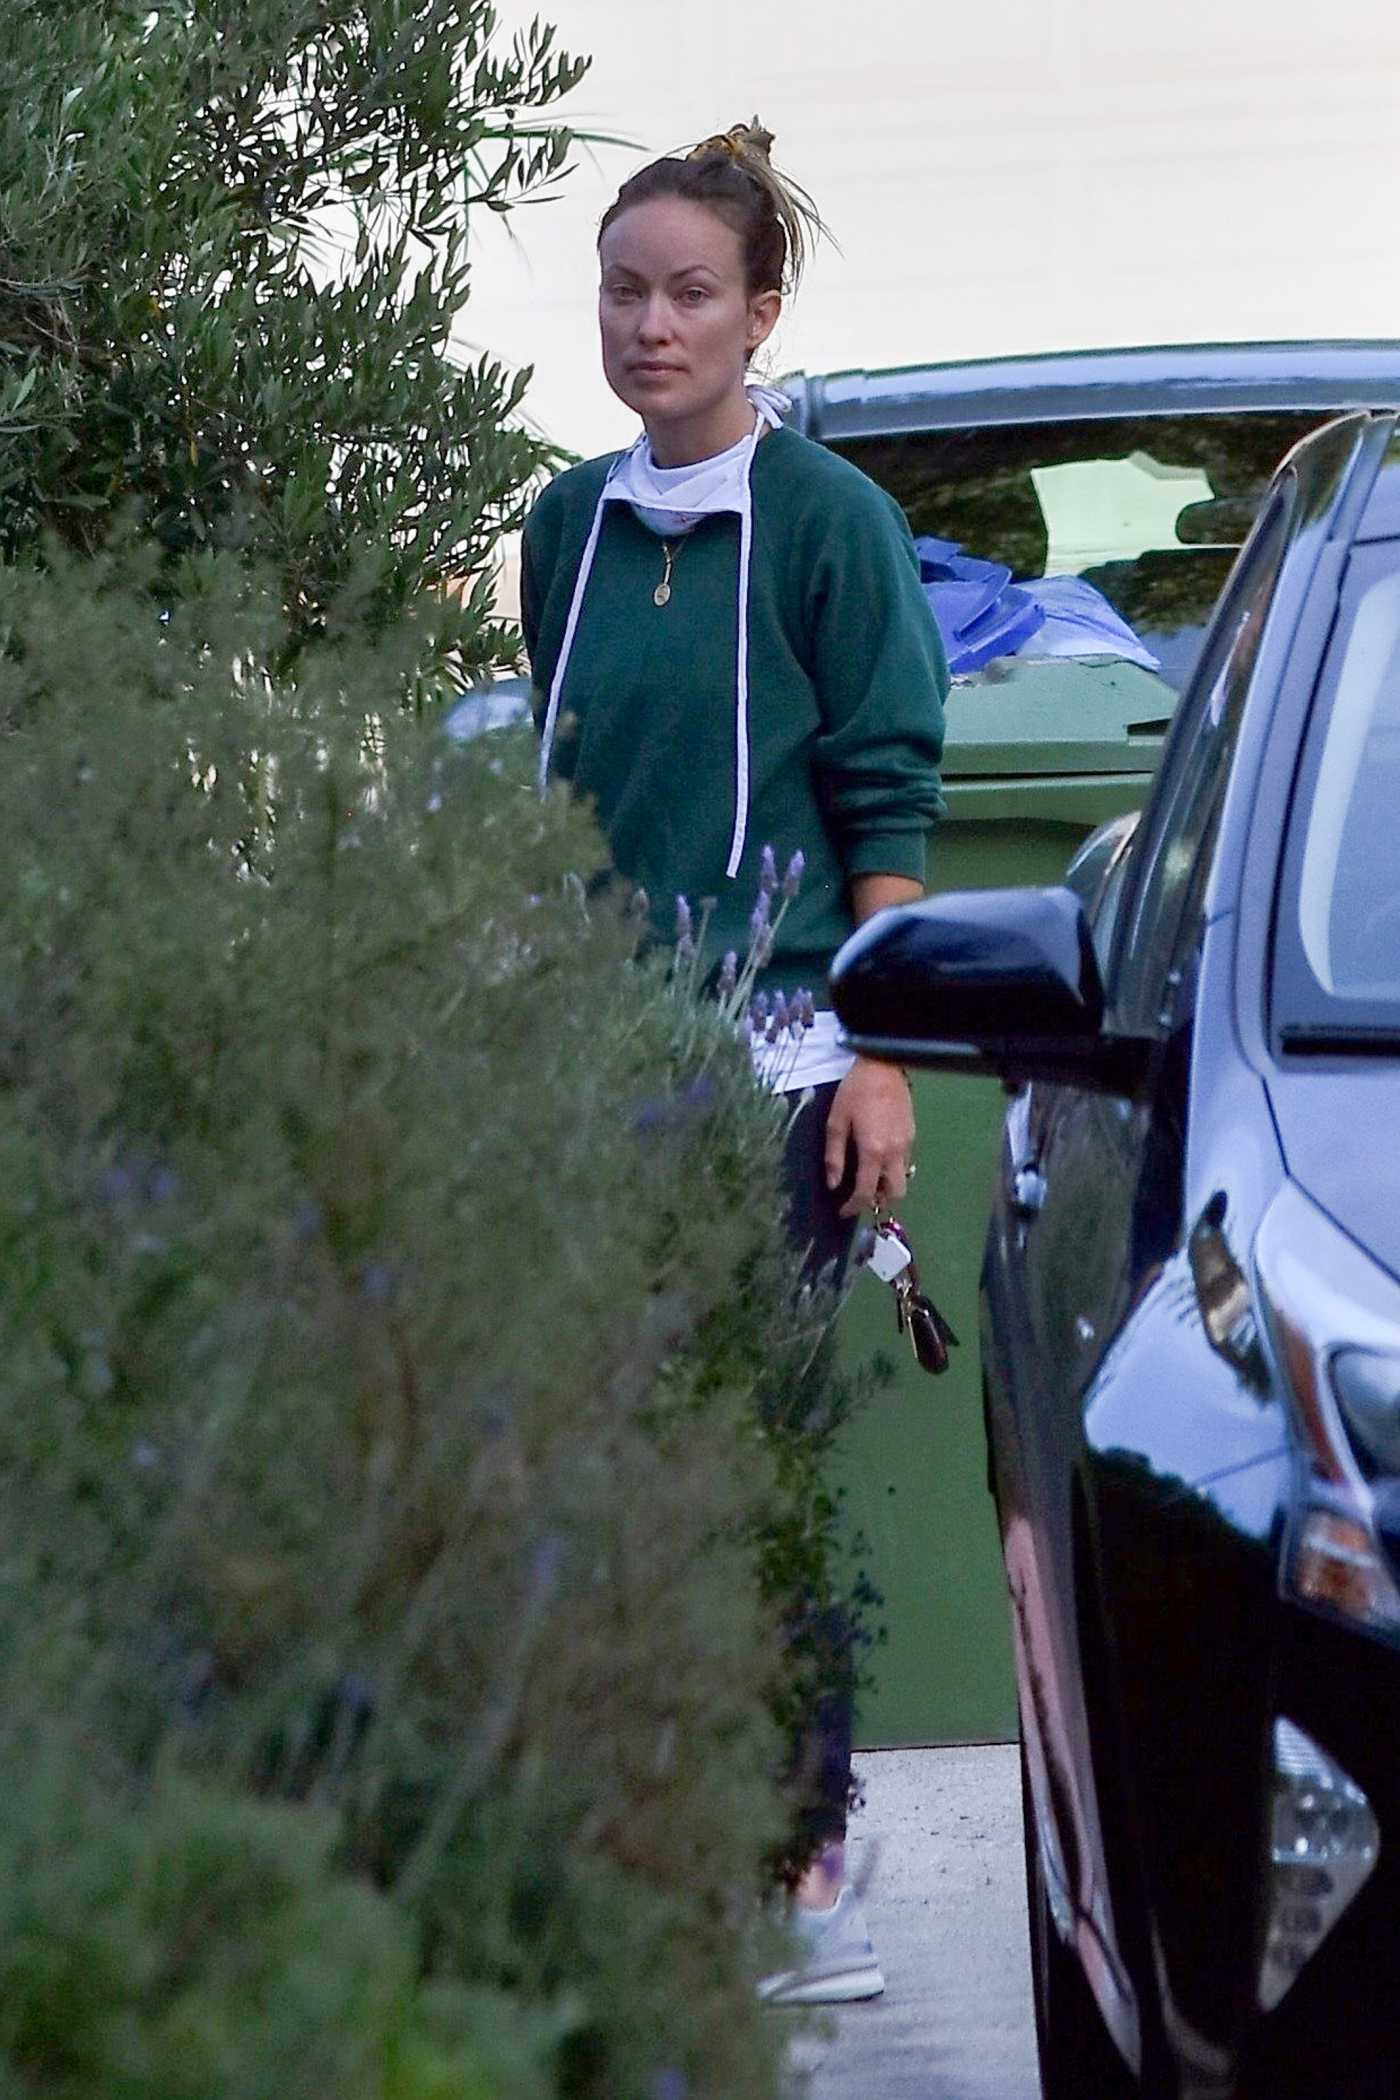 Olivia Wilde in a Green Sweatshirt Was Seen Out with Jason Sudeikis in Los Angeles 06/24/2020